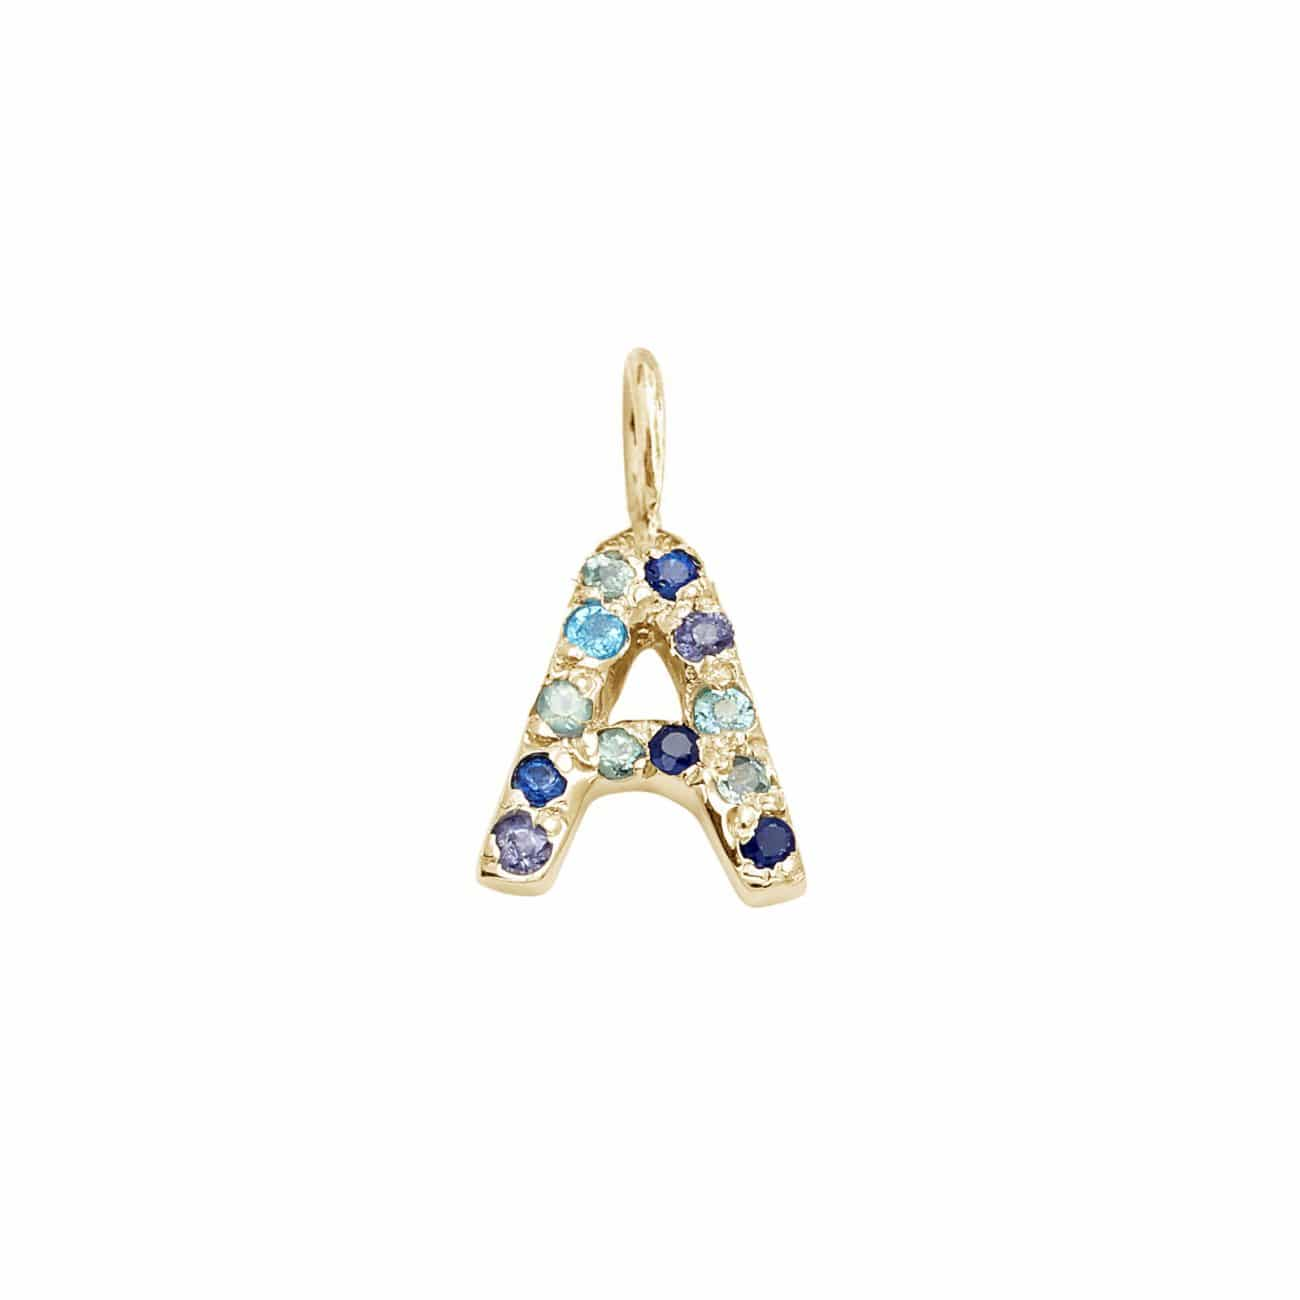 Letter Charm Pendant with Blue Hue Gems in 14k Yellow Gold